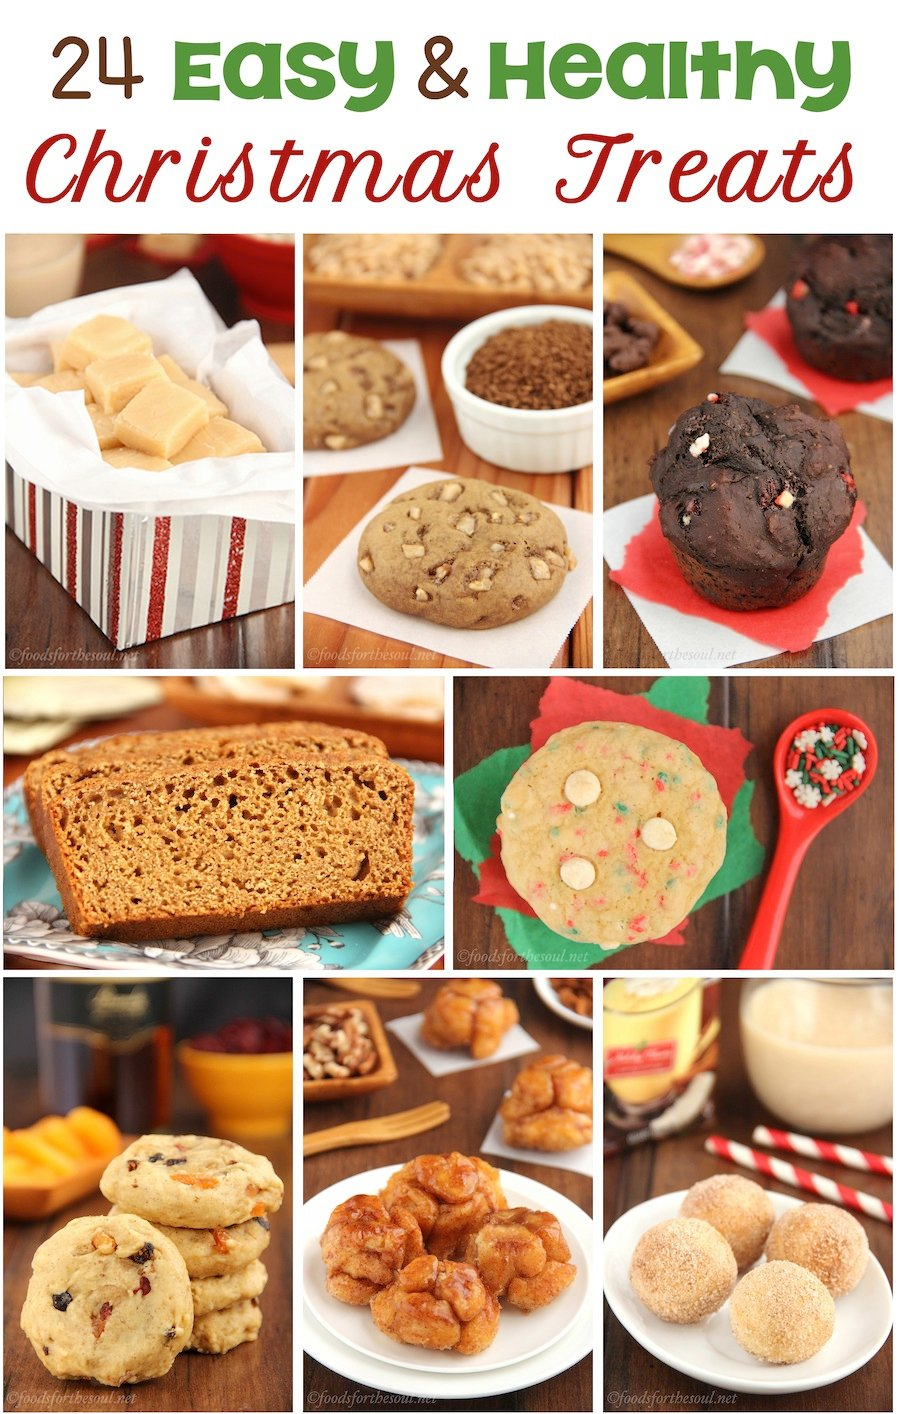 24 Easy & Healthy Christmas Treats -- perfect for last-minute breakfasts & baking!